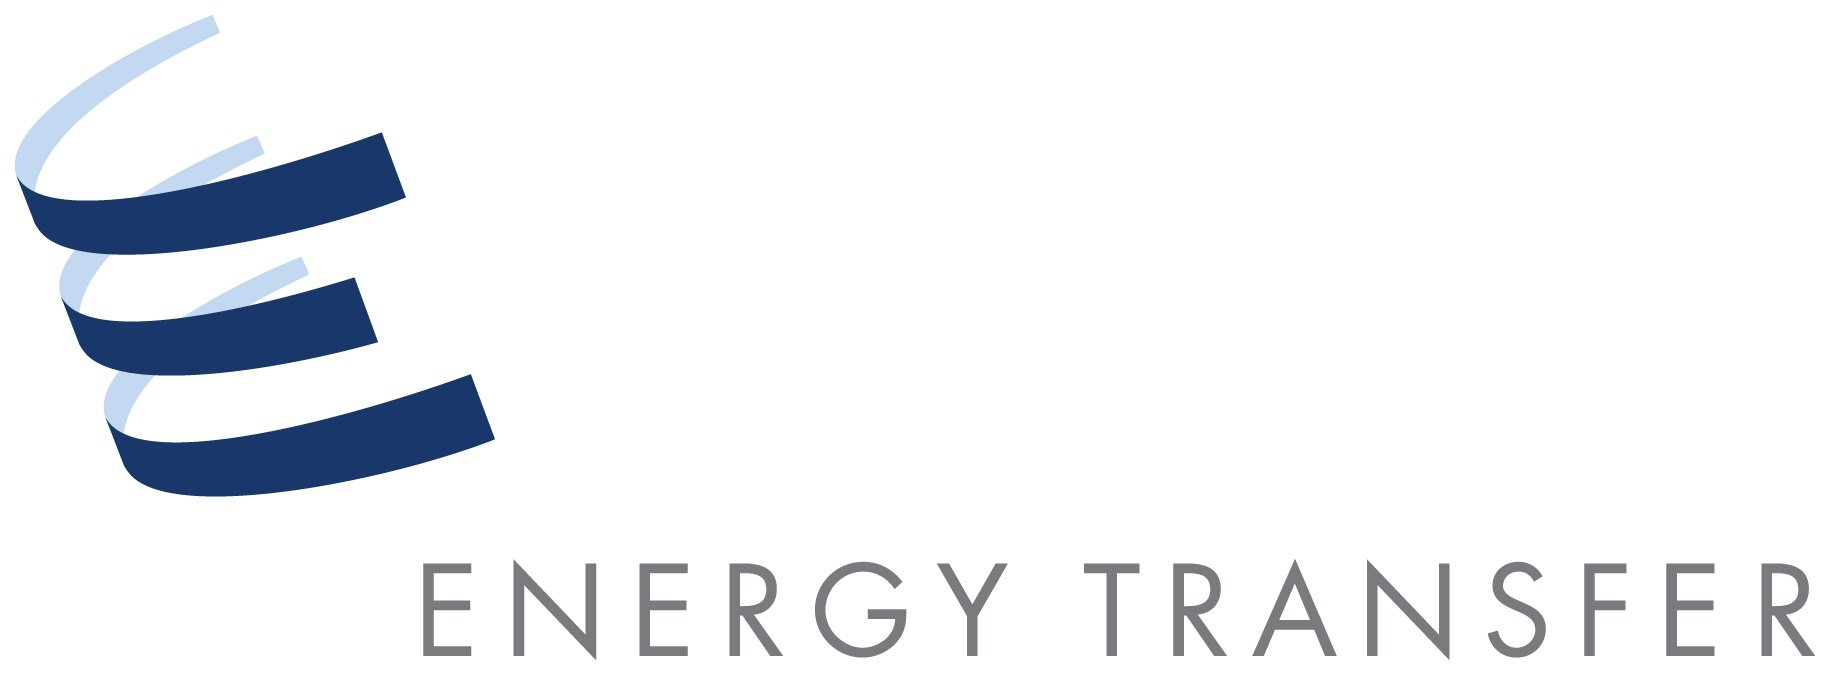 Energy Transfer: Rover & ME2 Pipelines Both Online by End 2Q18 ...